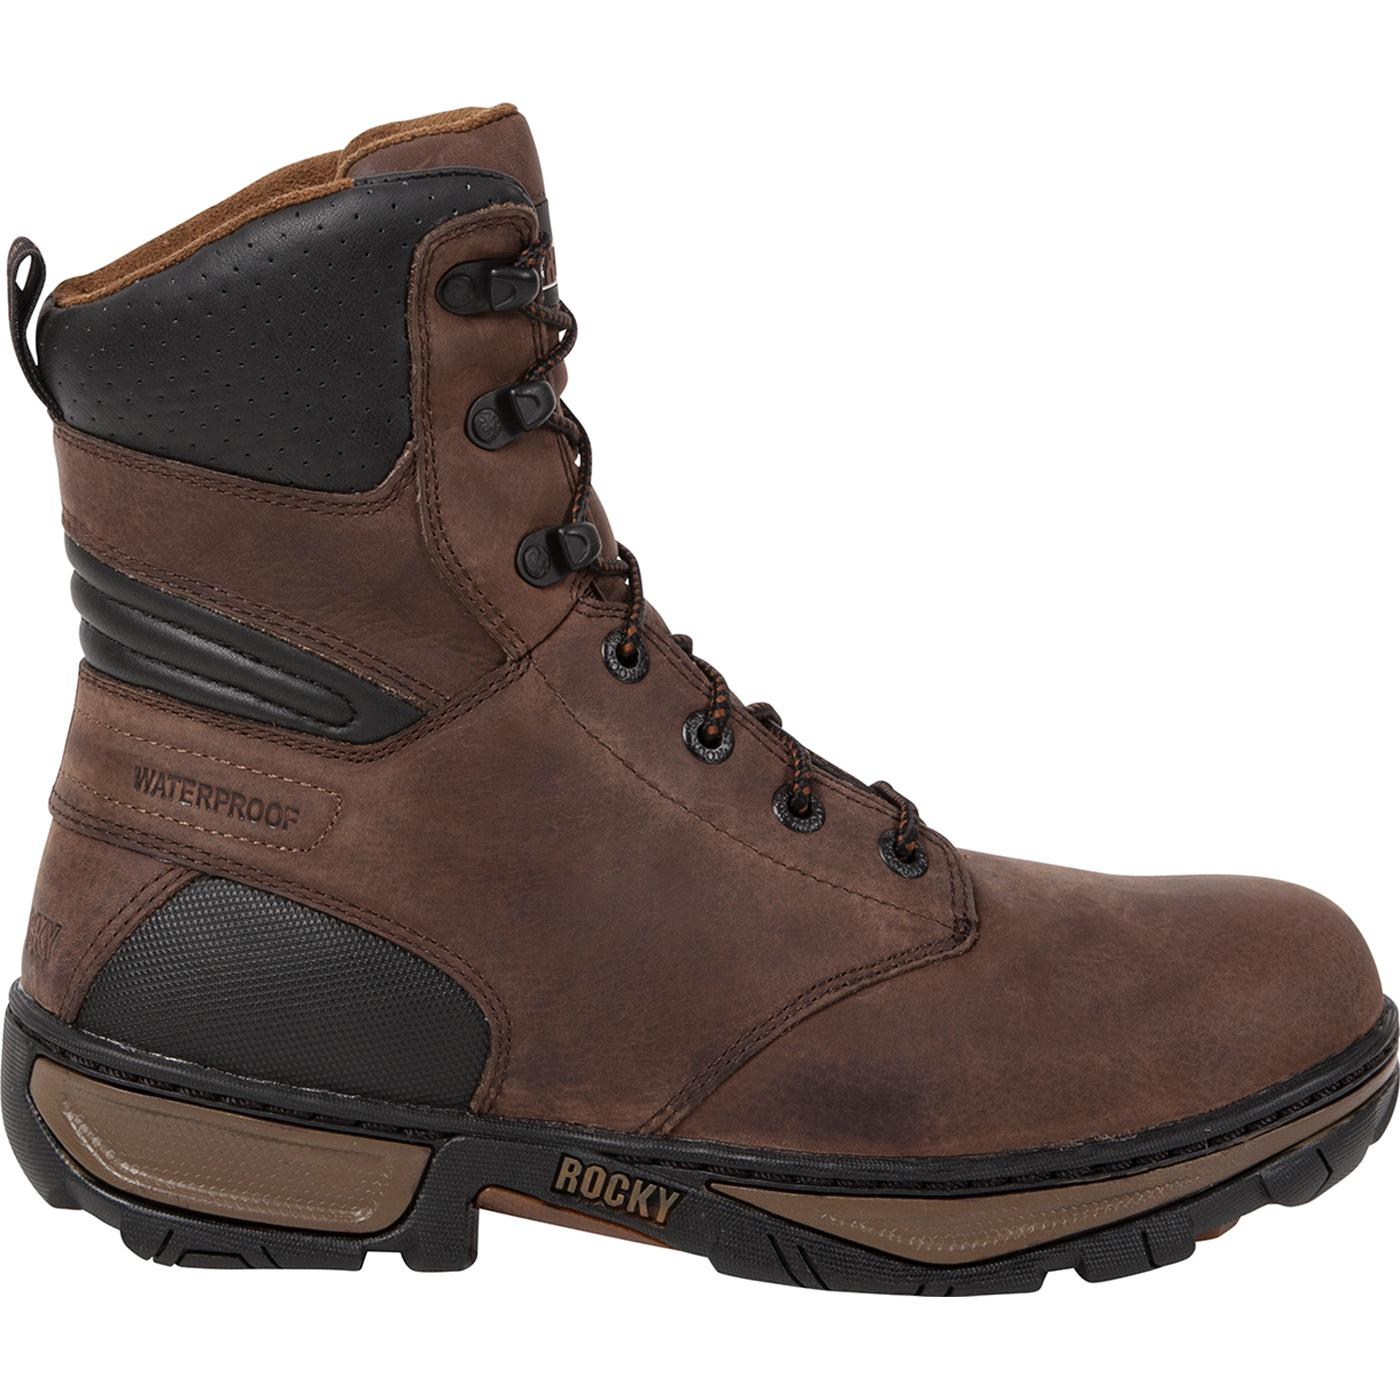 8 Quot Rocky Forge Waterproof Insulated Work Boots Rkyo020